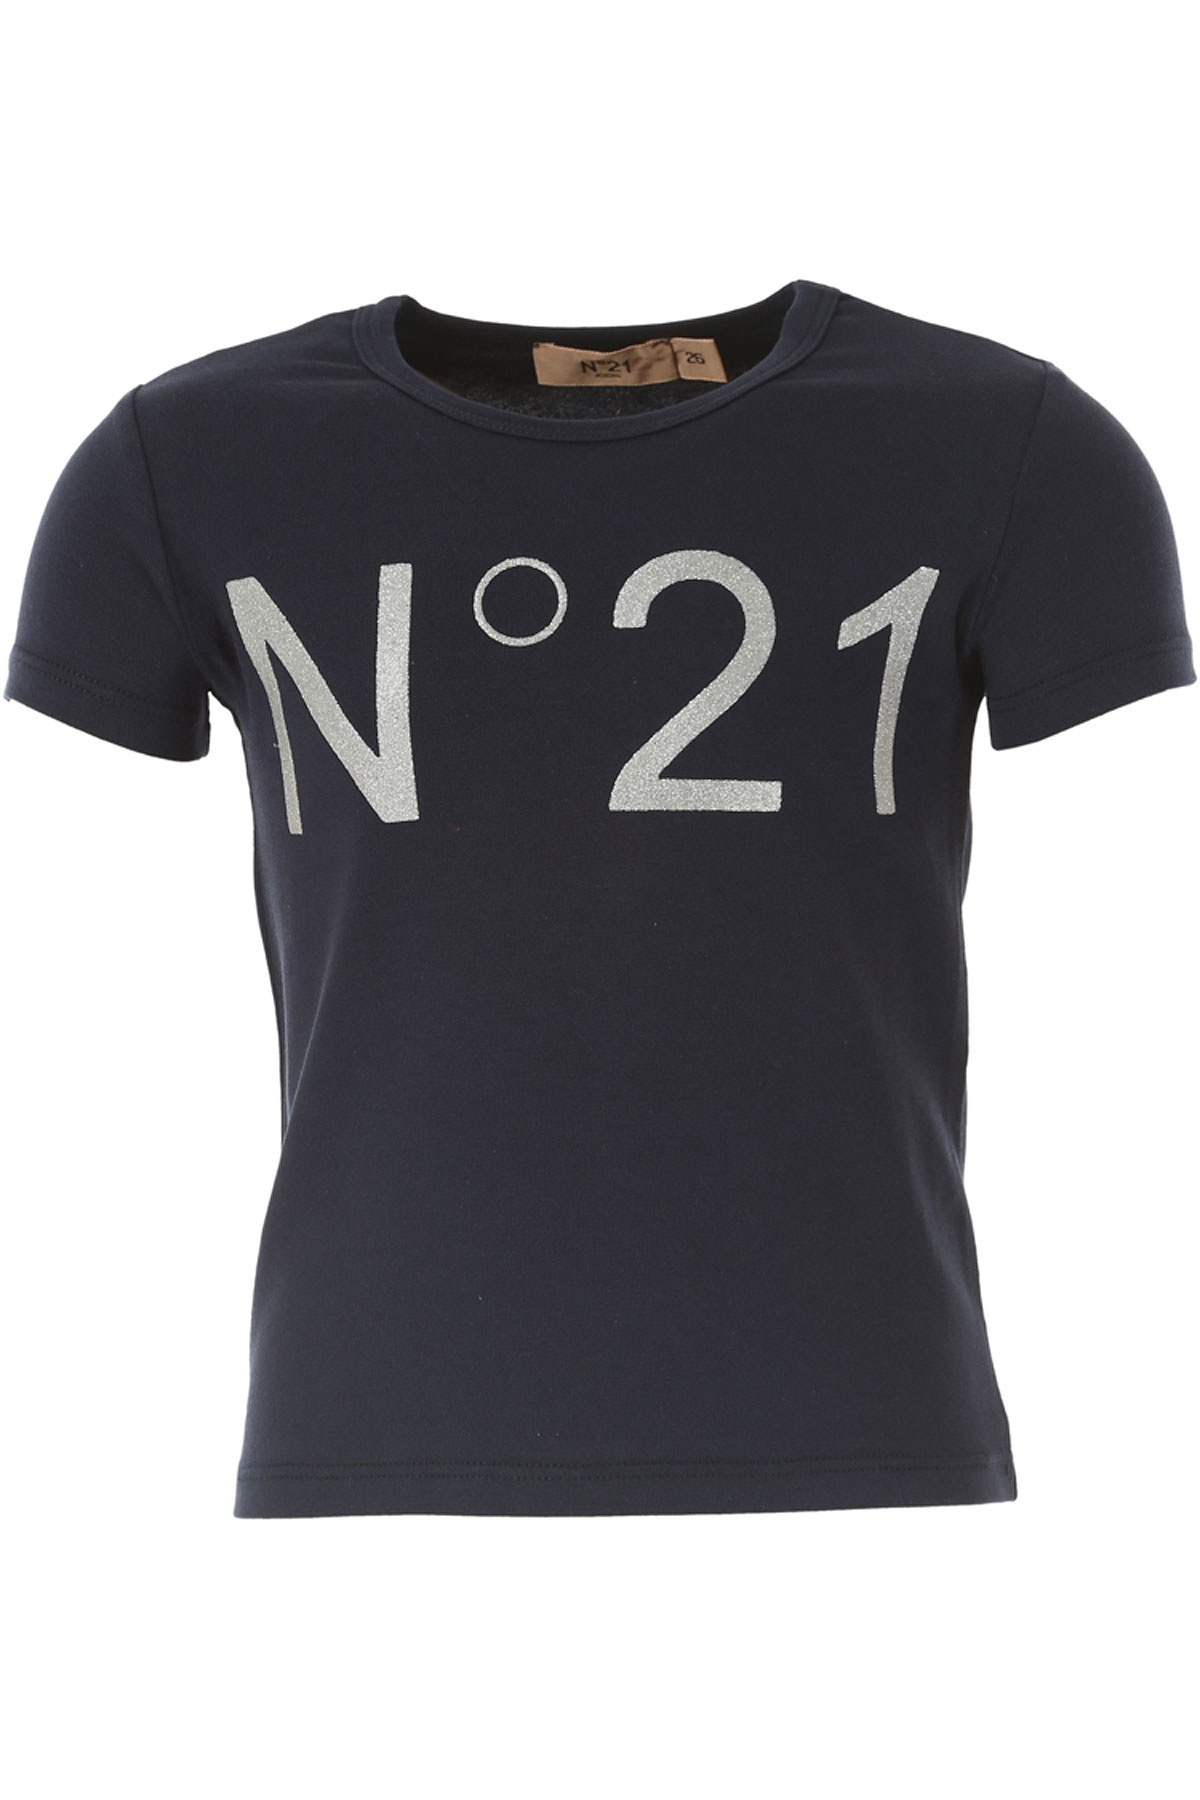 NO 21 Kids T-Shirt for Girls On Sale in Outlet, Blue, Cotton, 2019, 30 (6 Years) 34 (8 Years) 36 (9 Years)